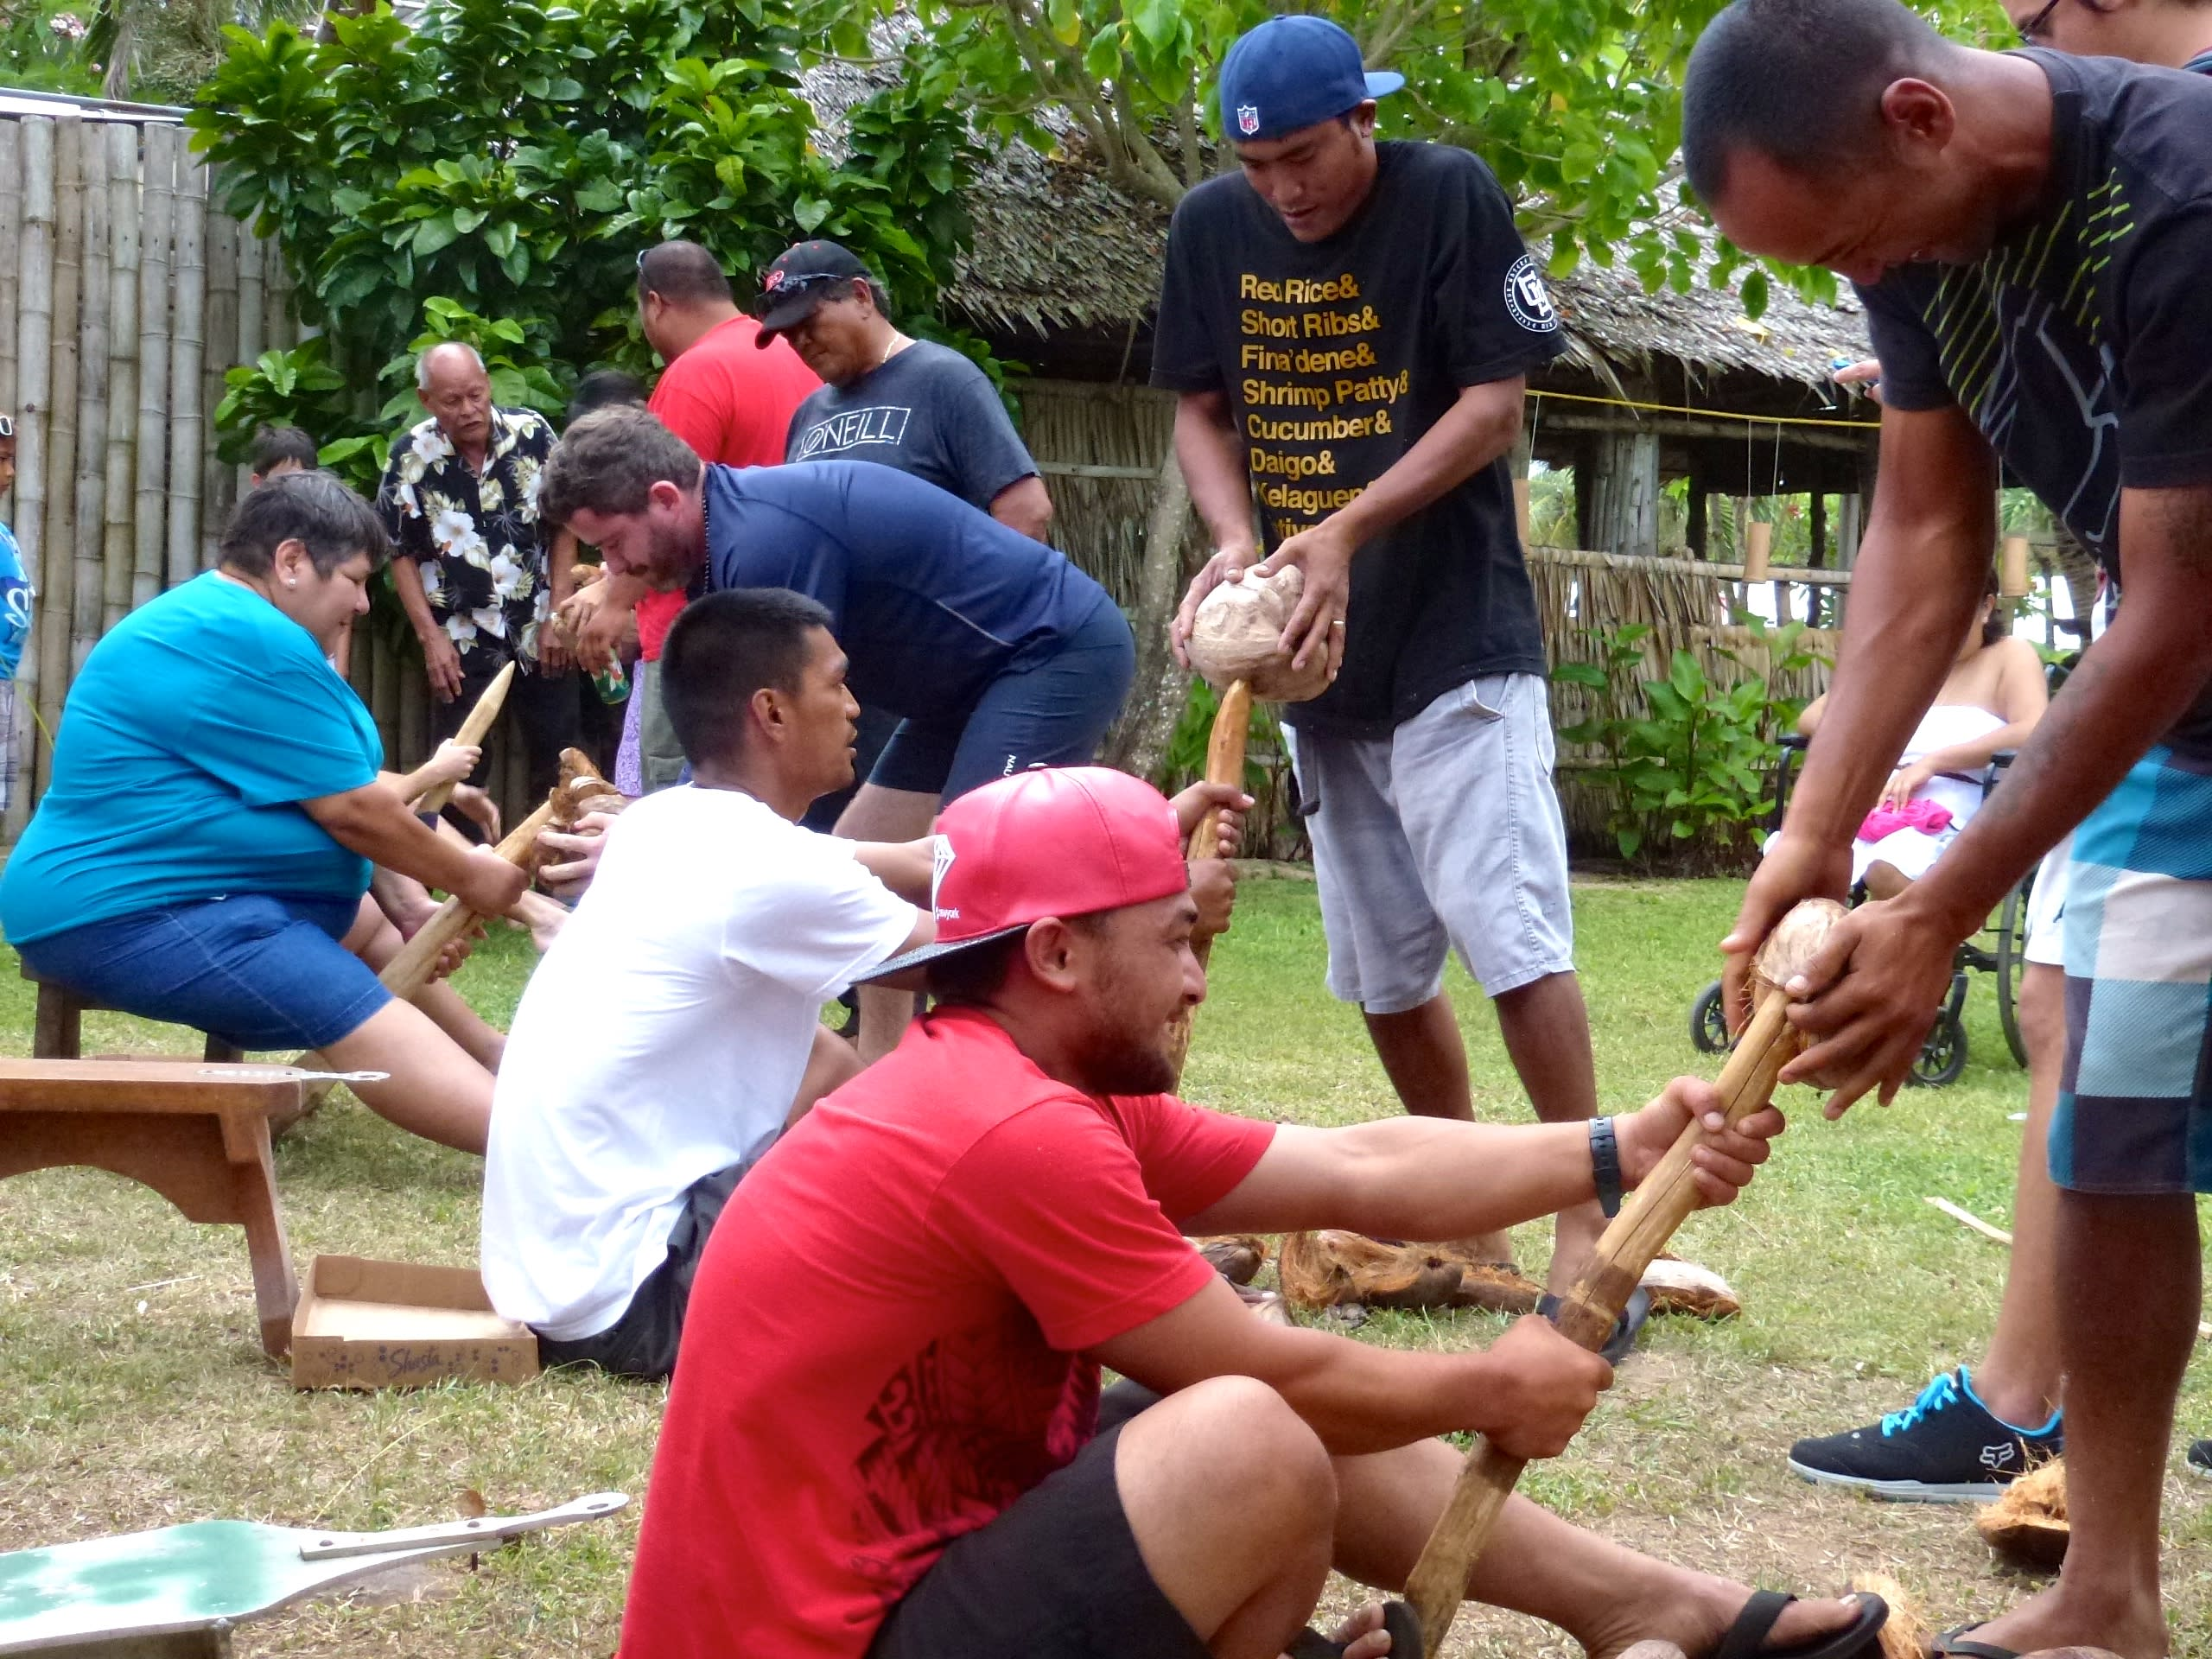 The coconut husking contest is one of many games held during the festival